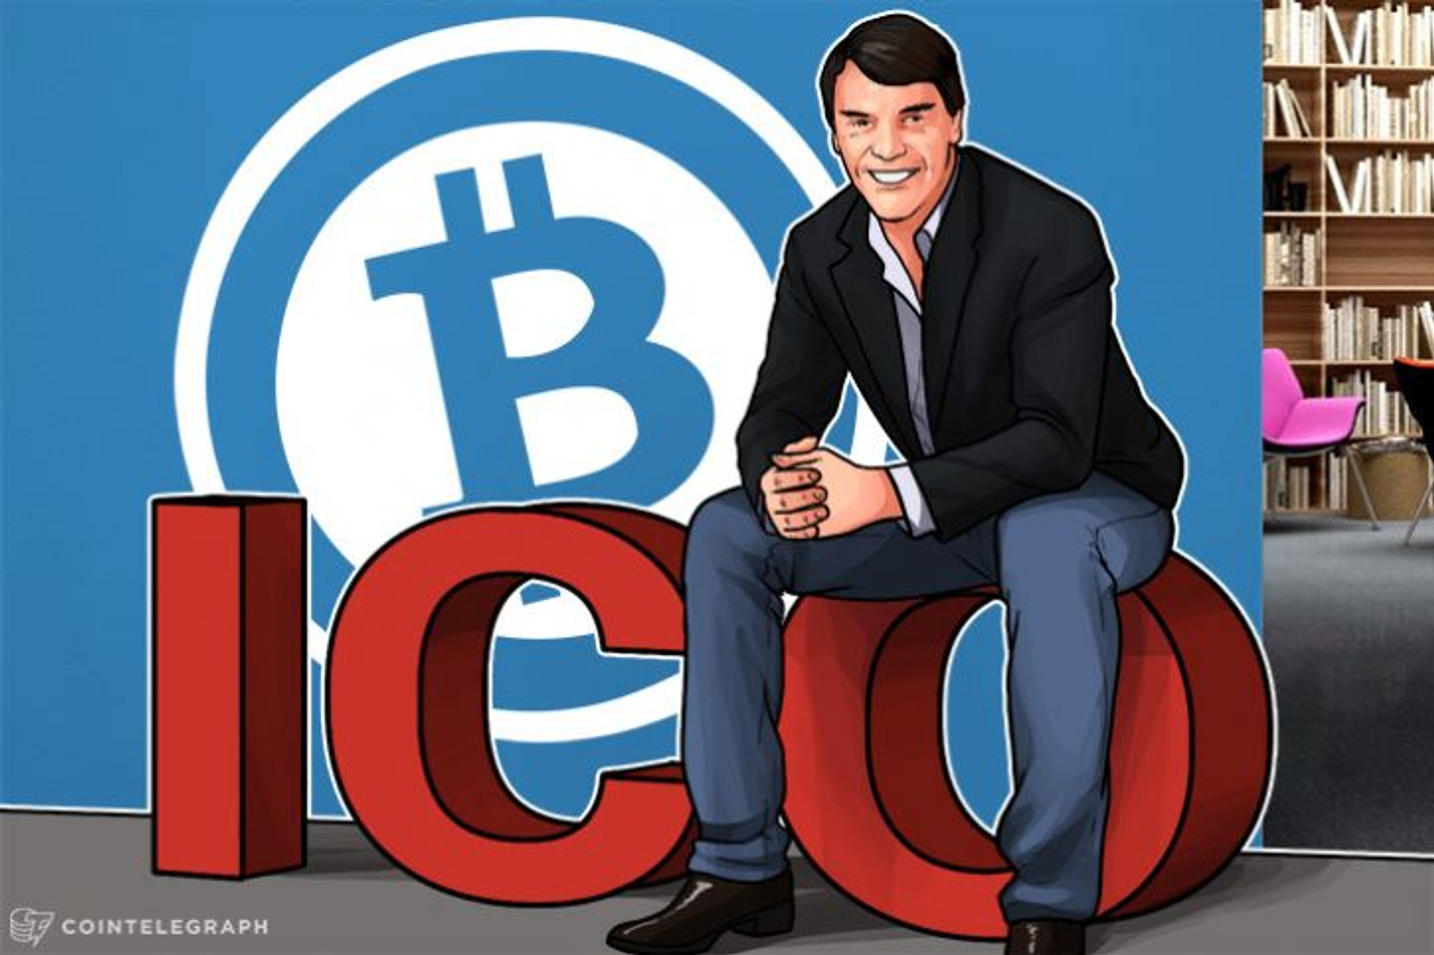 Crypto Ledger Tezos Raises $160 Mln In 32 Hours, Will Become Largest ICO Ever